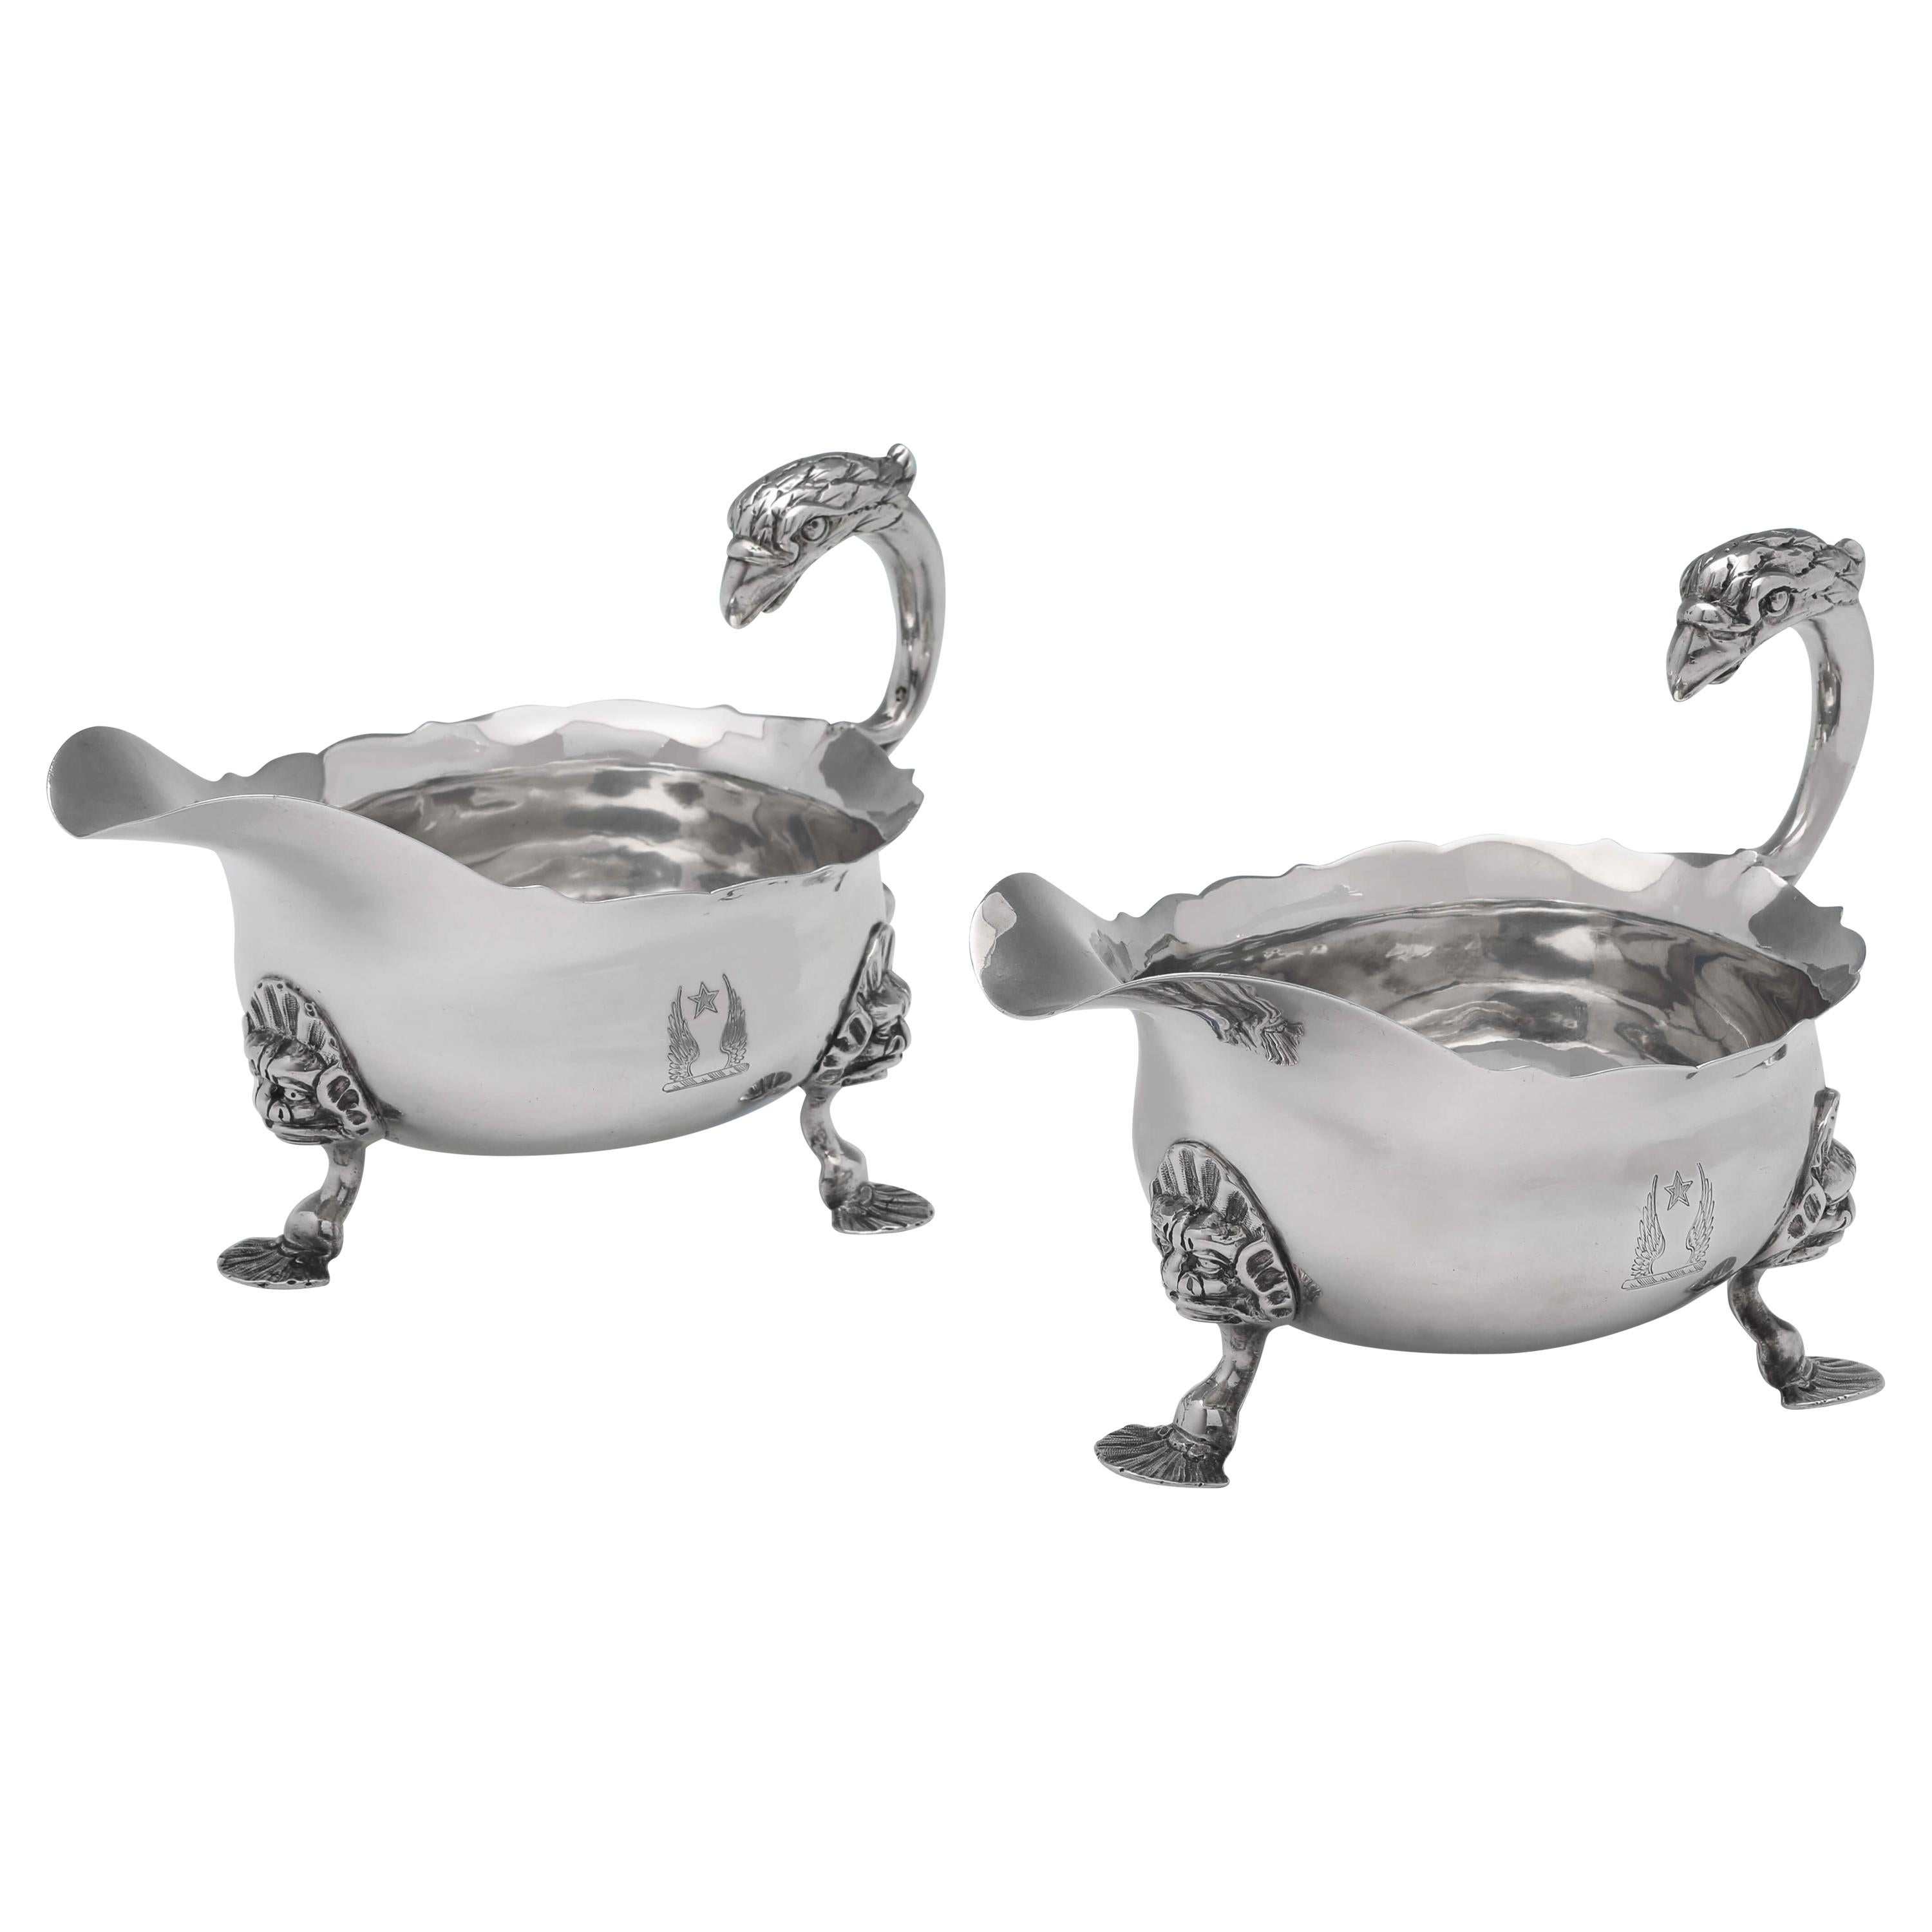 Rococo Antique Sterling Silver Pair of 'Eagle' Handle Sauce Boats, London, 1748